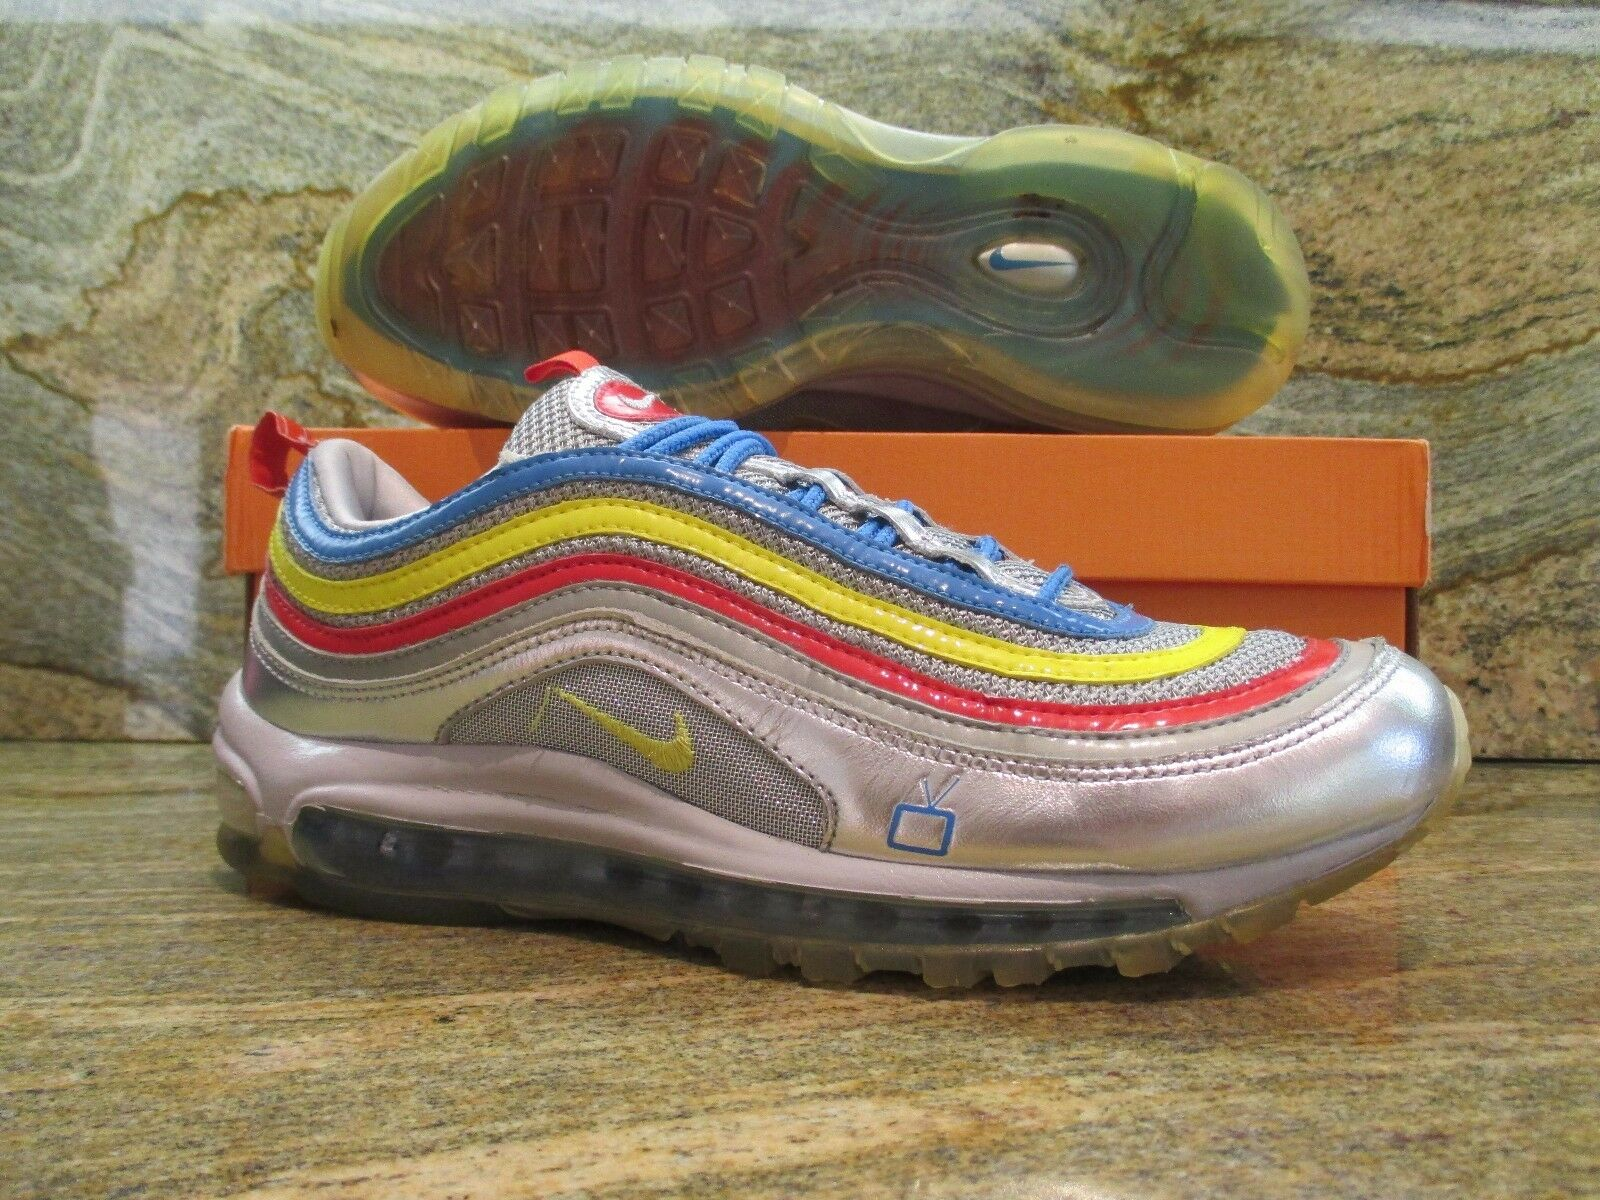 2007 Nike Air Max 97 Premium Anniversary SZ 9.5 Silver Voltage bluee 316088-071